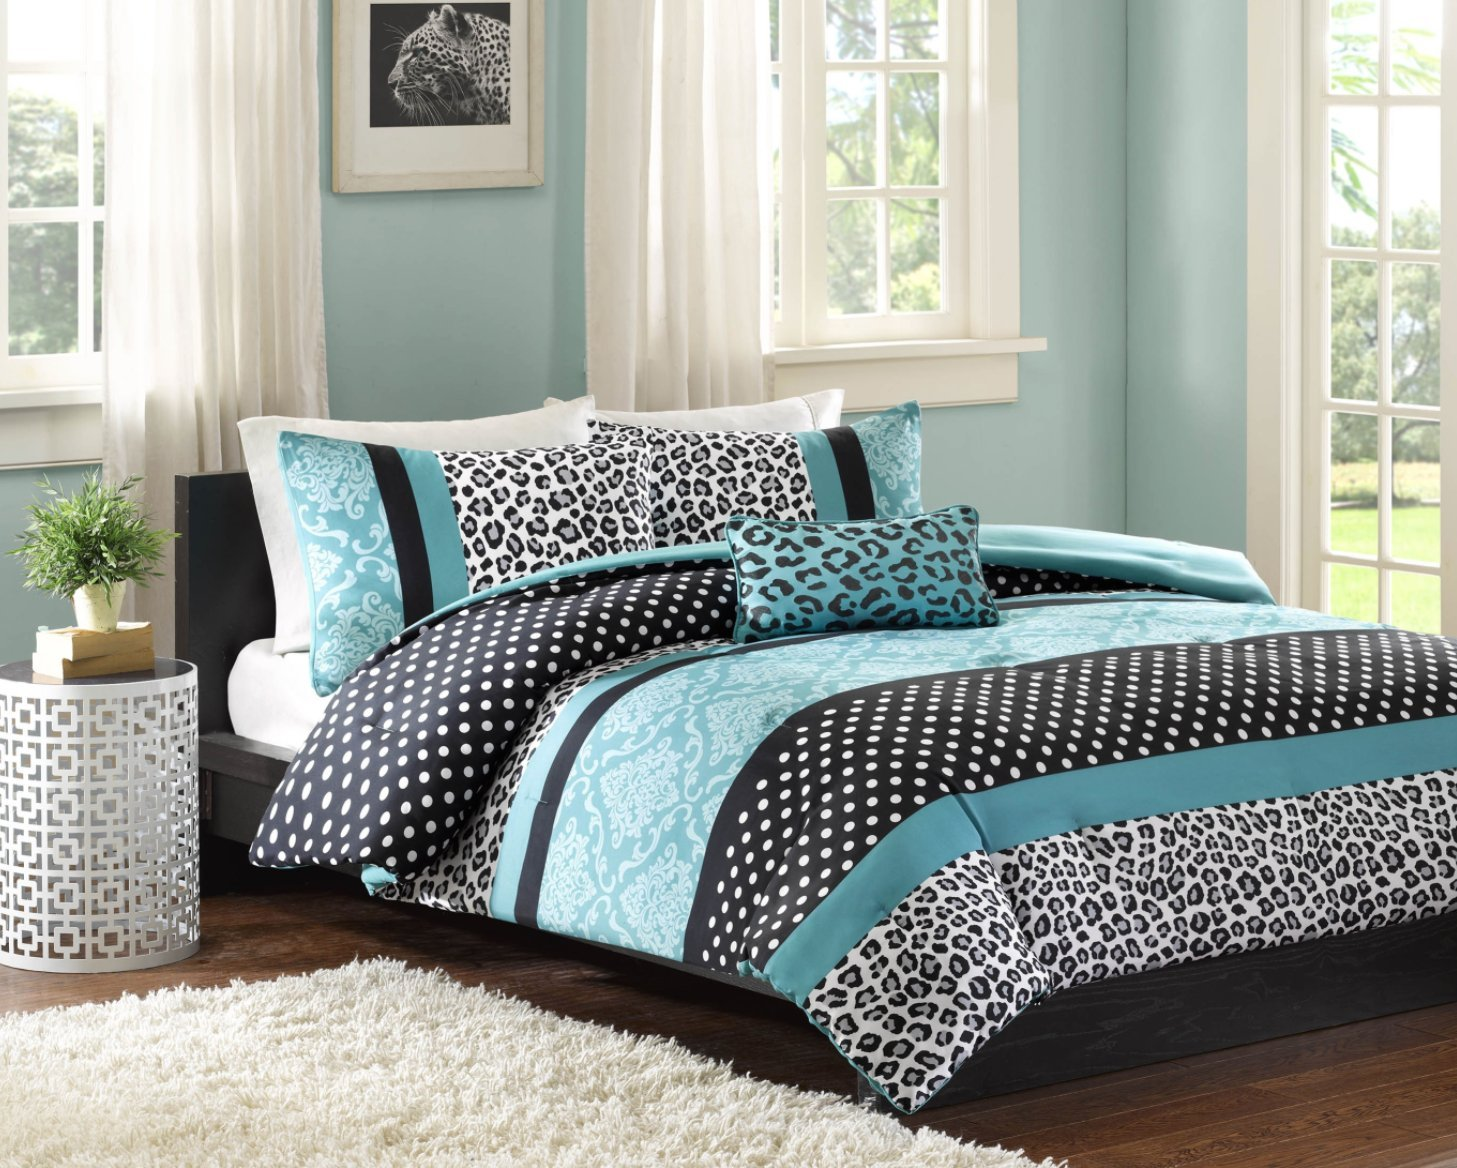 Comforter Bed Set Teen Bedding Modern Teal Black Animal Print Girls Bedspead